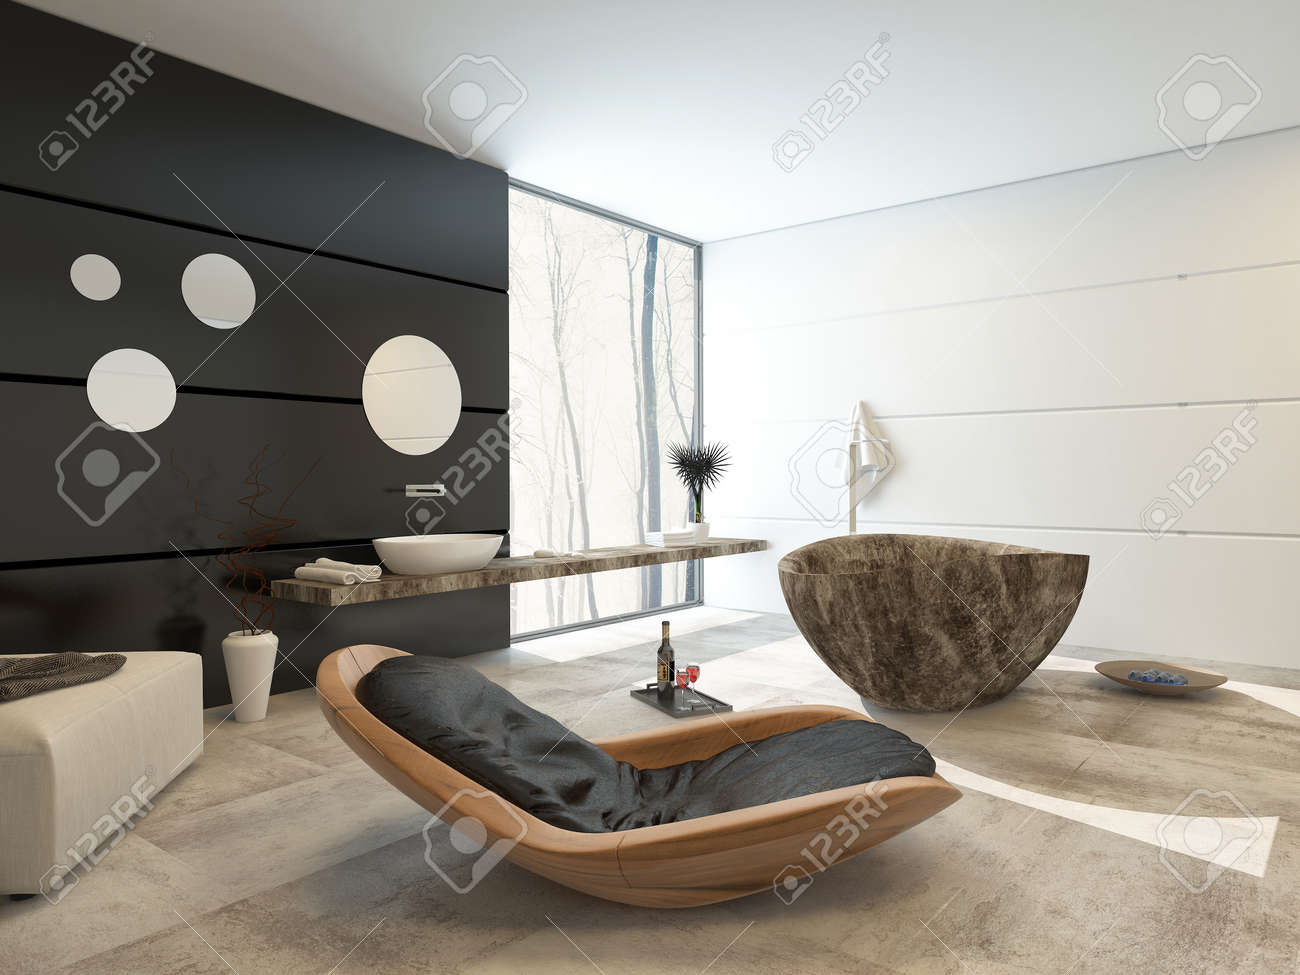 Contemporary Design In A Luxury Bathroom Interior With Comfortable Wooden Recliner Chair Ottoman